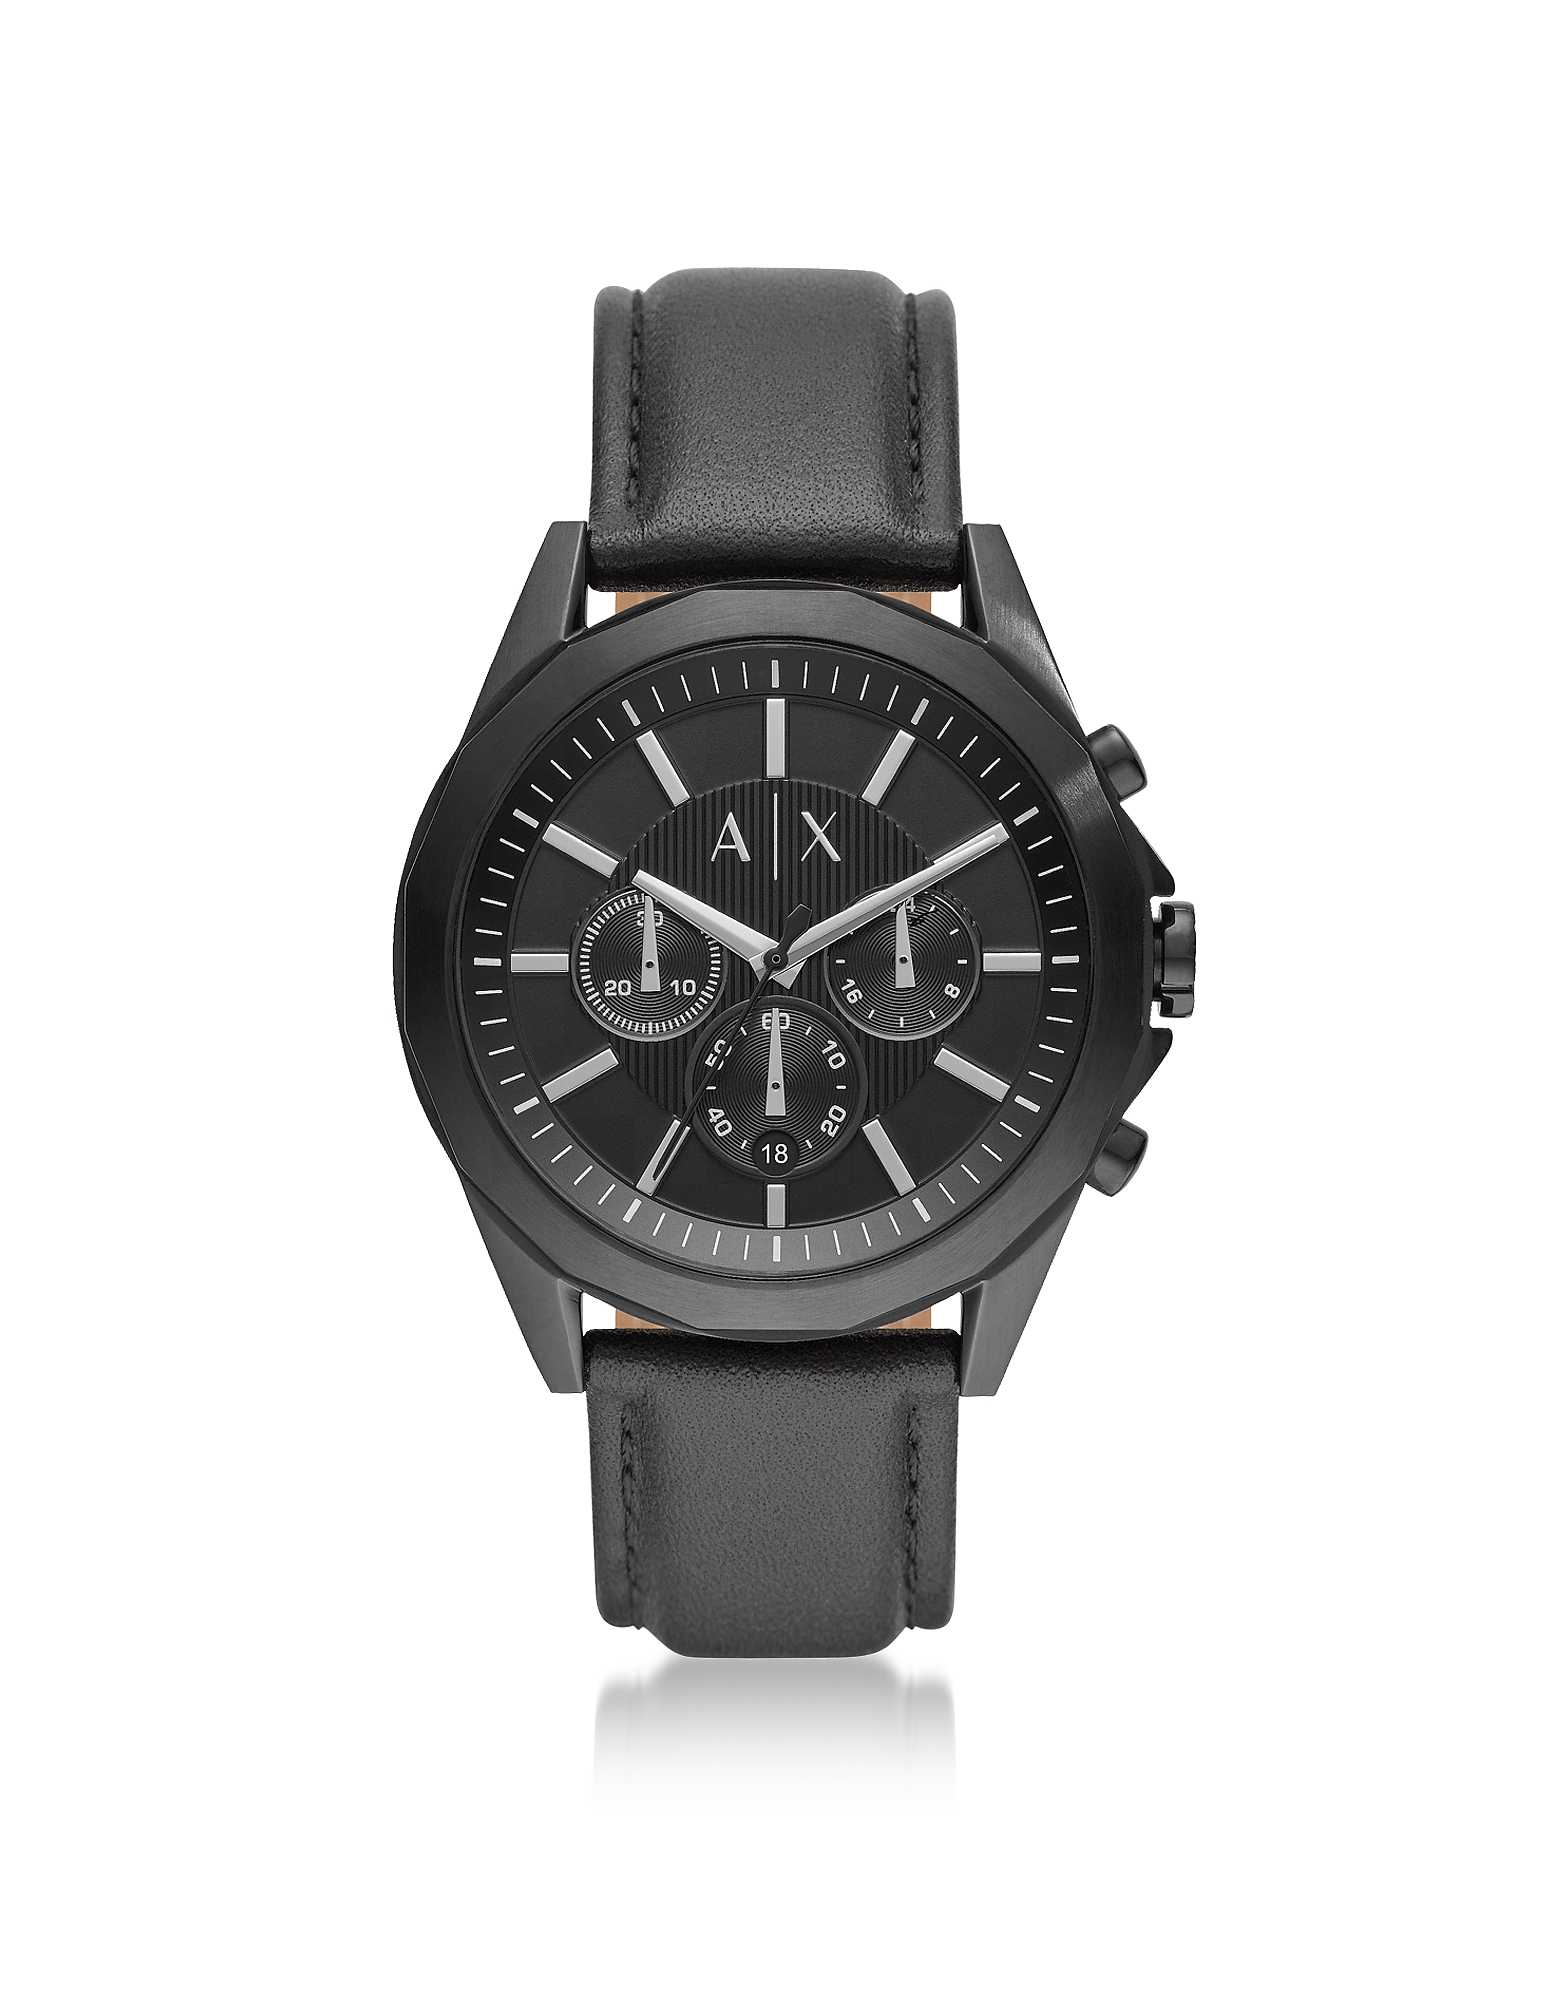 Drexler Black Dial and Black Leather Men's Chronograph Watch